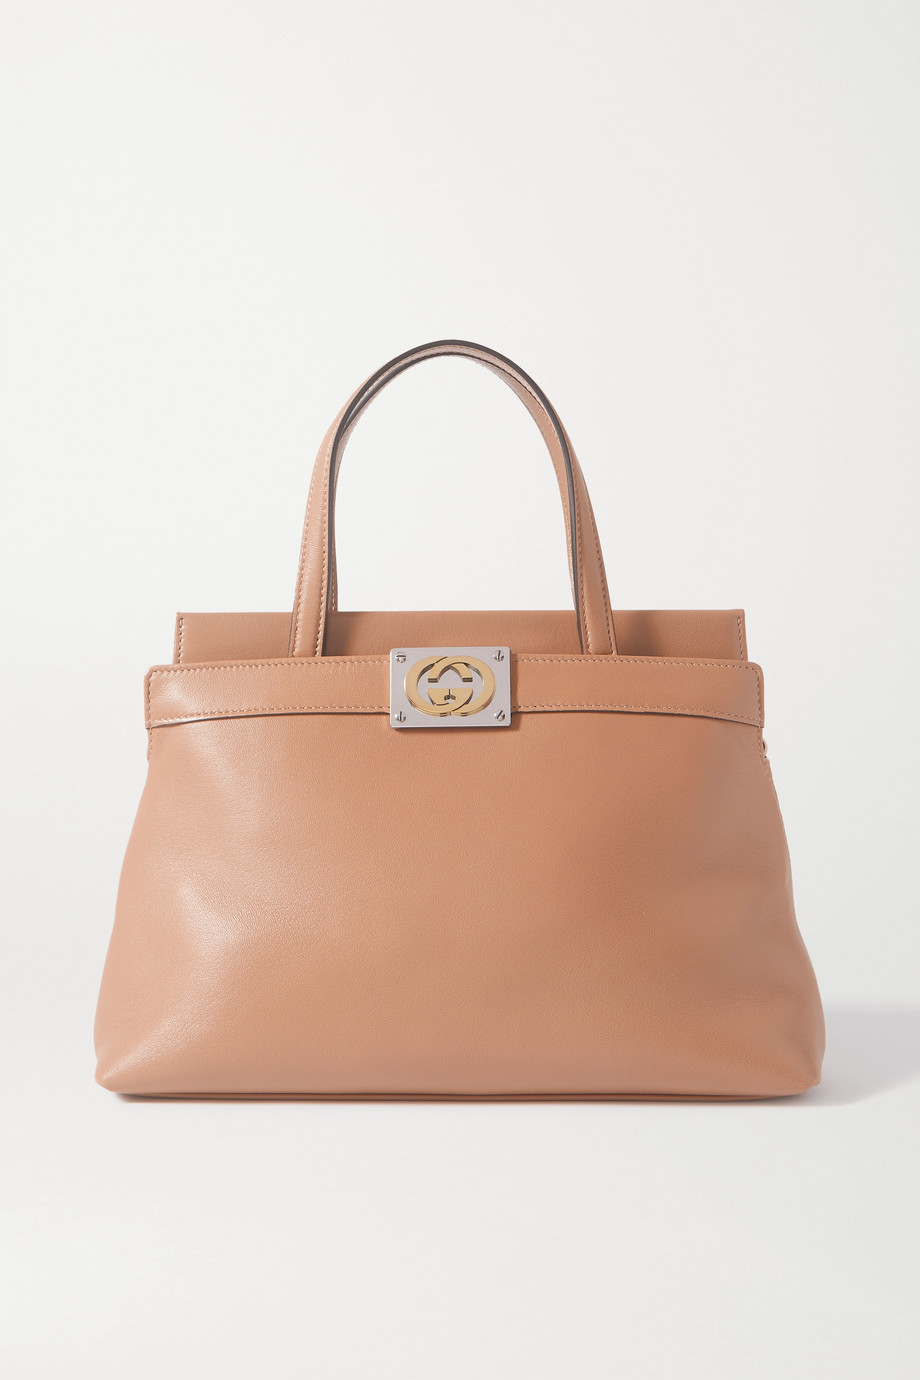 Gucci Linea Matisse leather tote